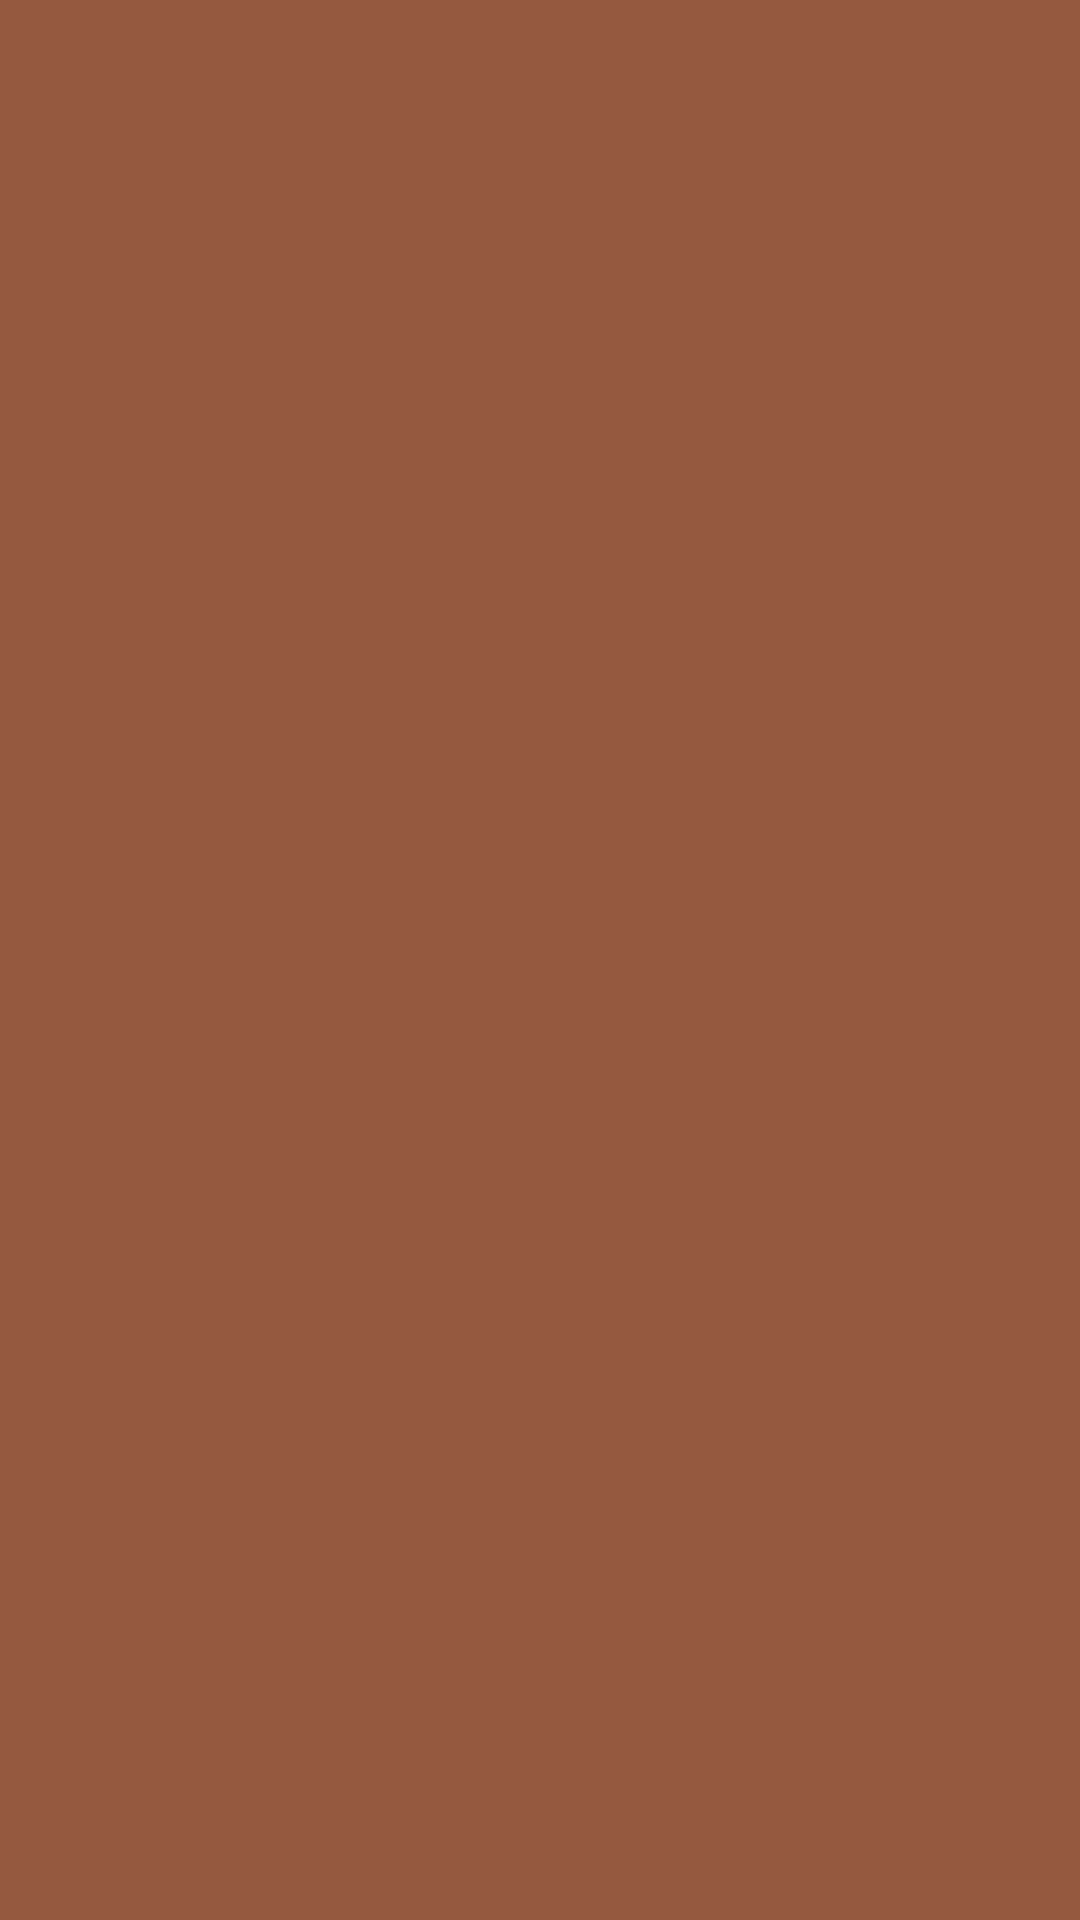 1080x1920 Coconut Solid Color Background